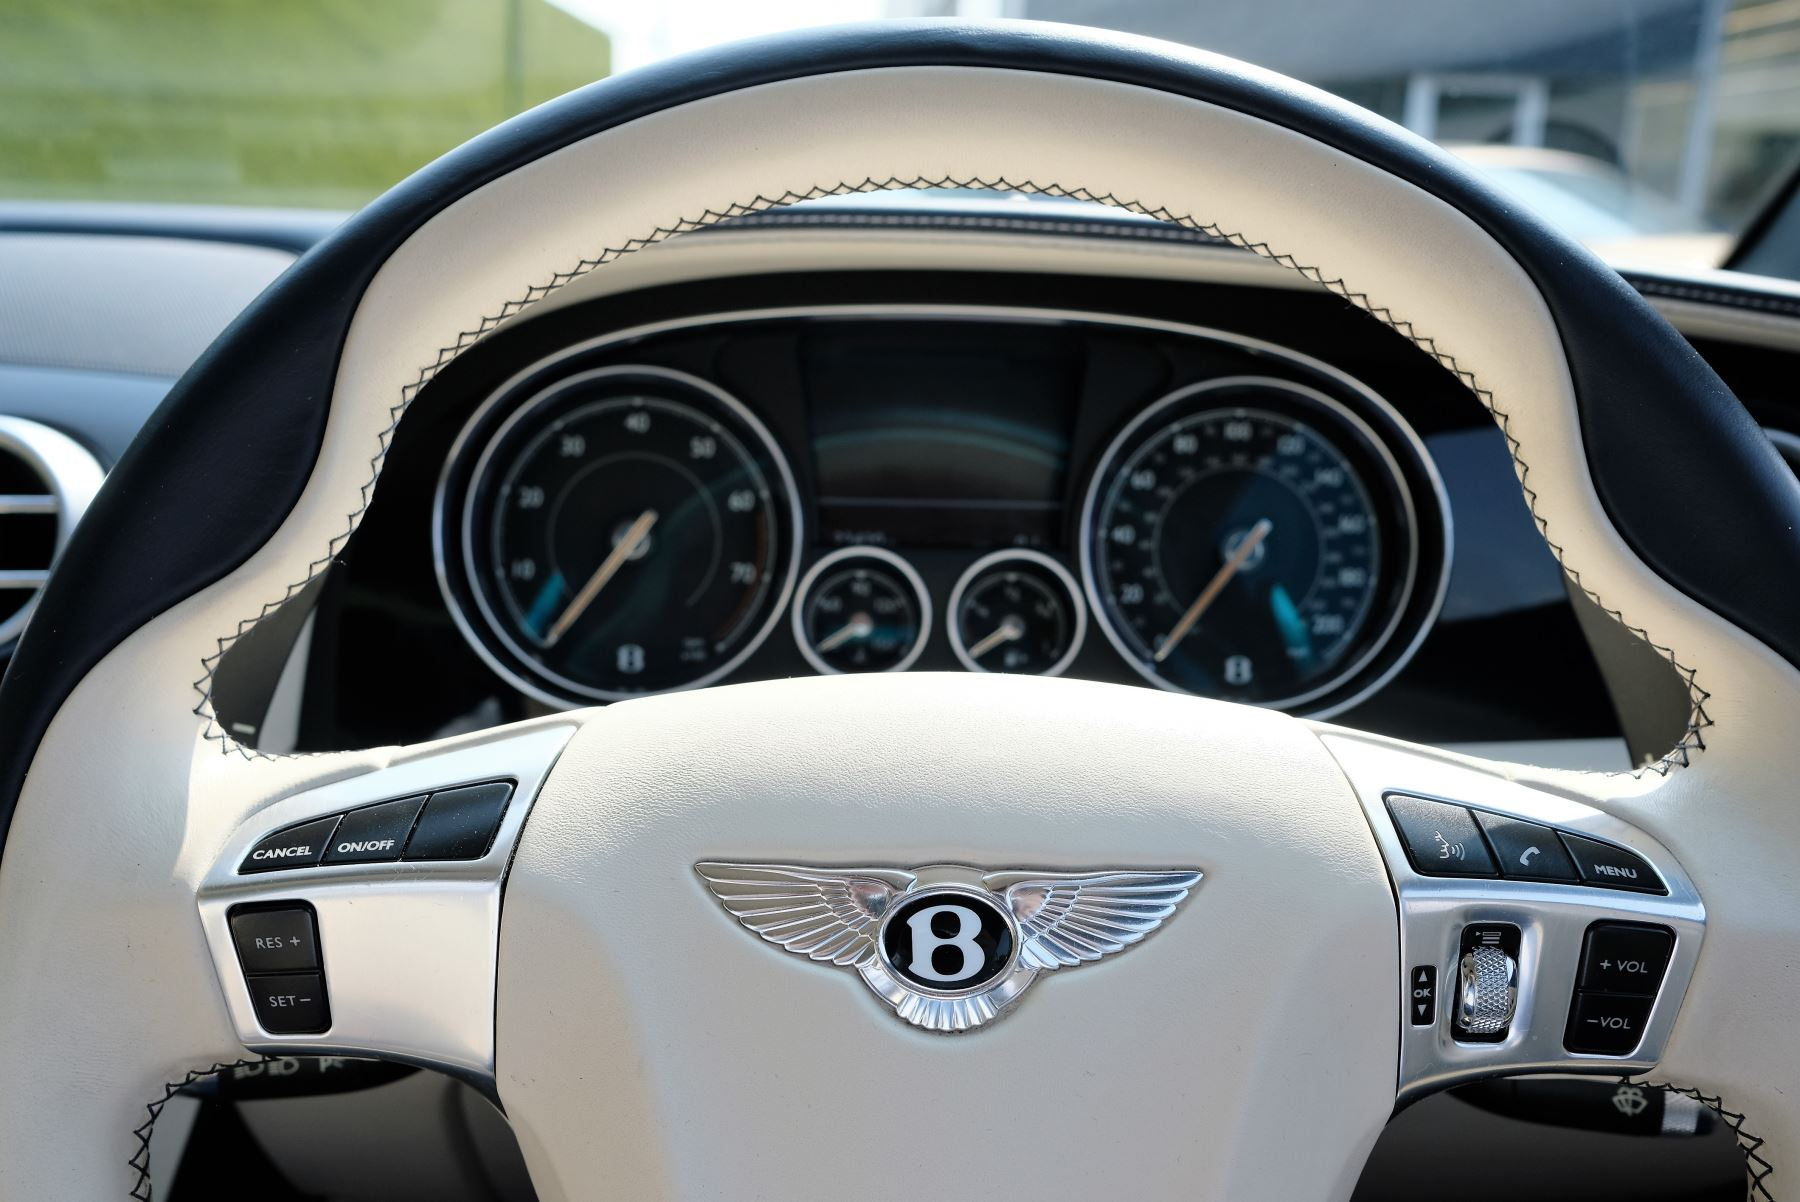 Bentley Continental GT V8 S Coupe 4.0 V8 S 2dr Auto Mulliner Driving Specification image 12